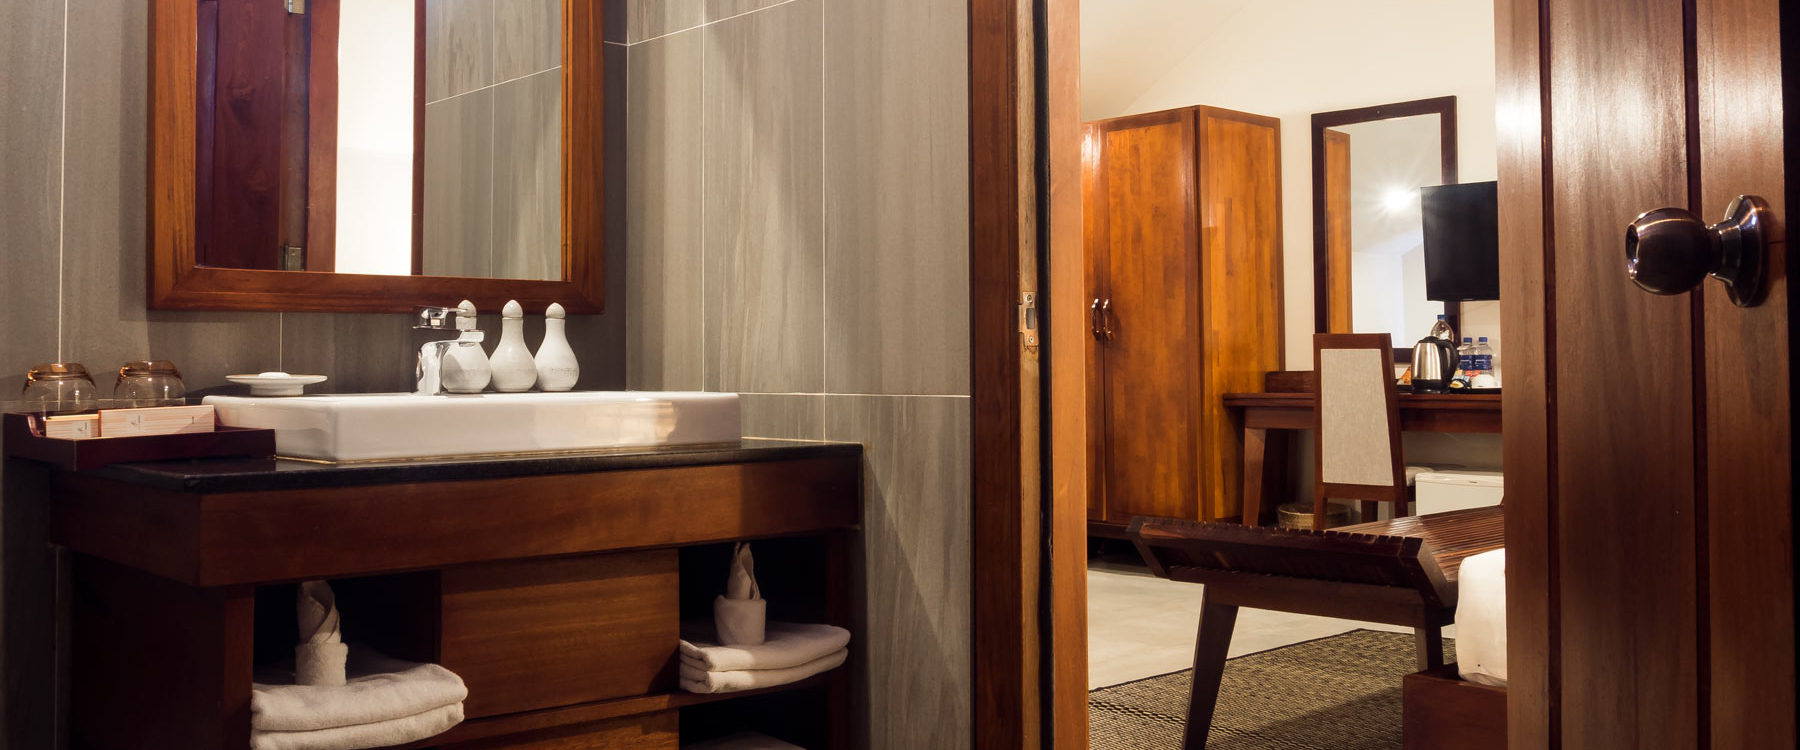 High standard private bathroom fully furnished in a Studio Room with tiles floor, wardrobe and televisor in Advaya Residence in Siem Reap - Cambodia.